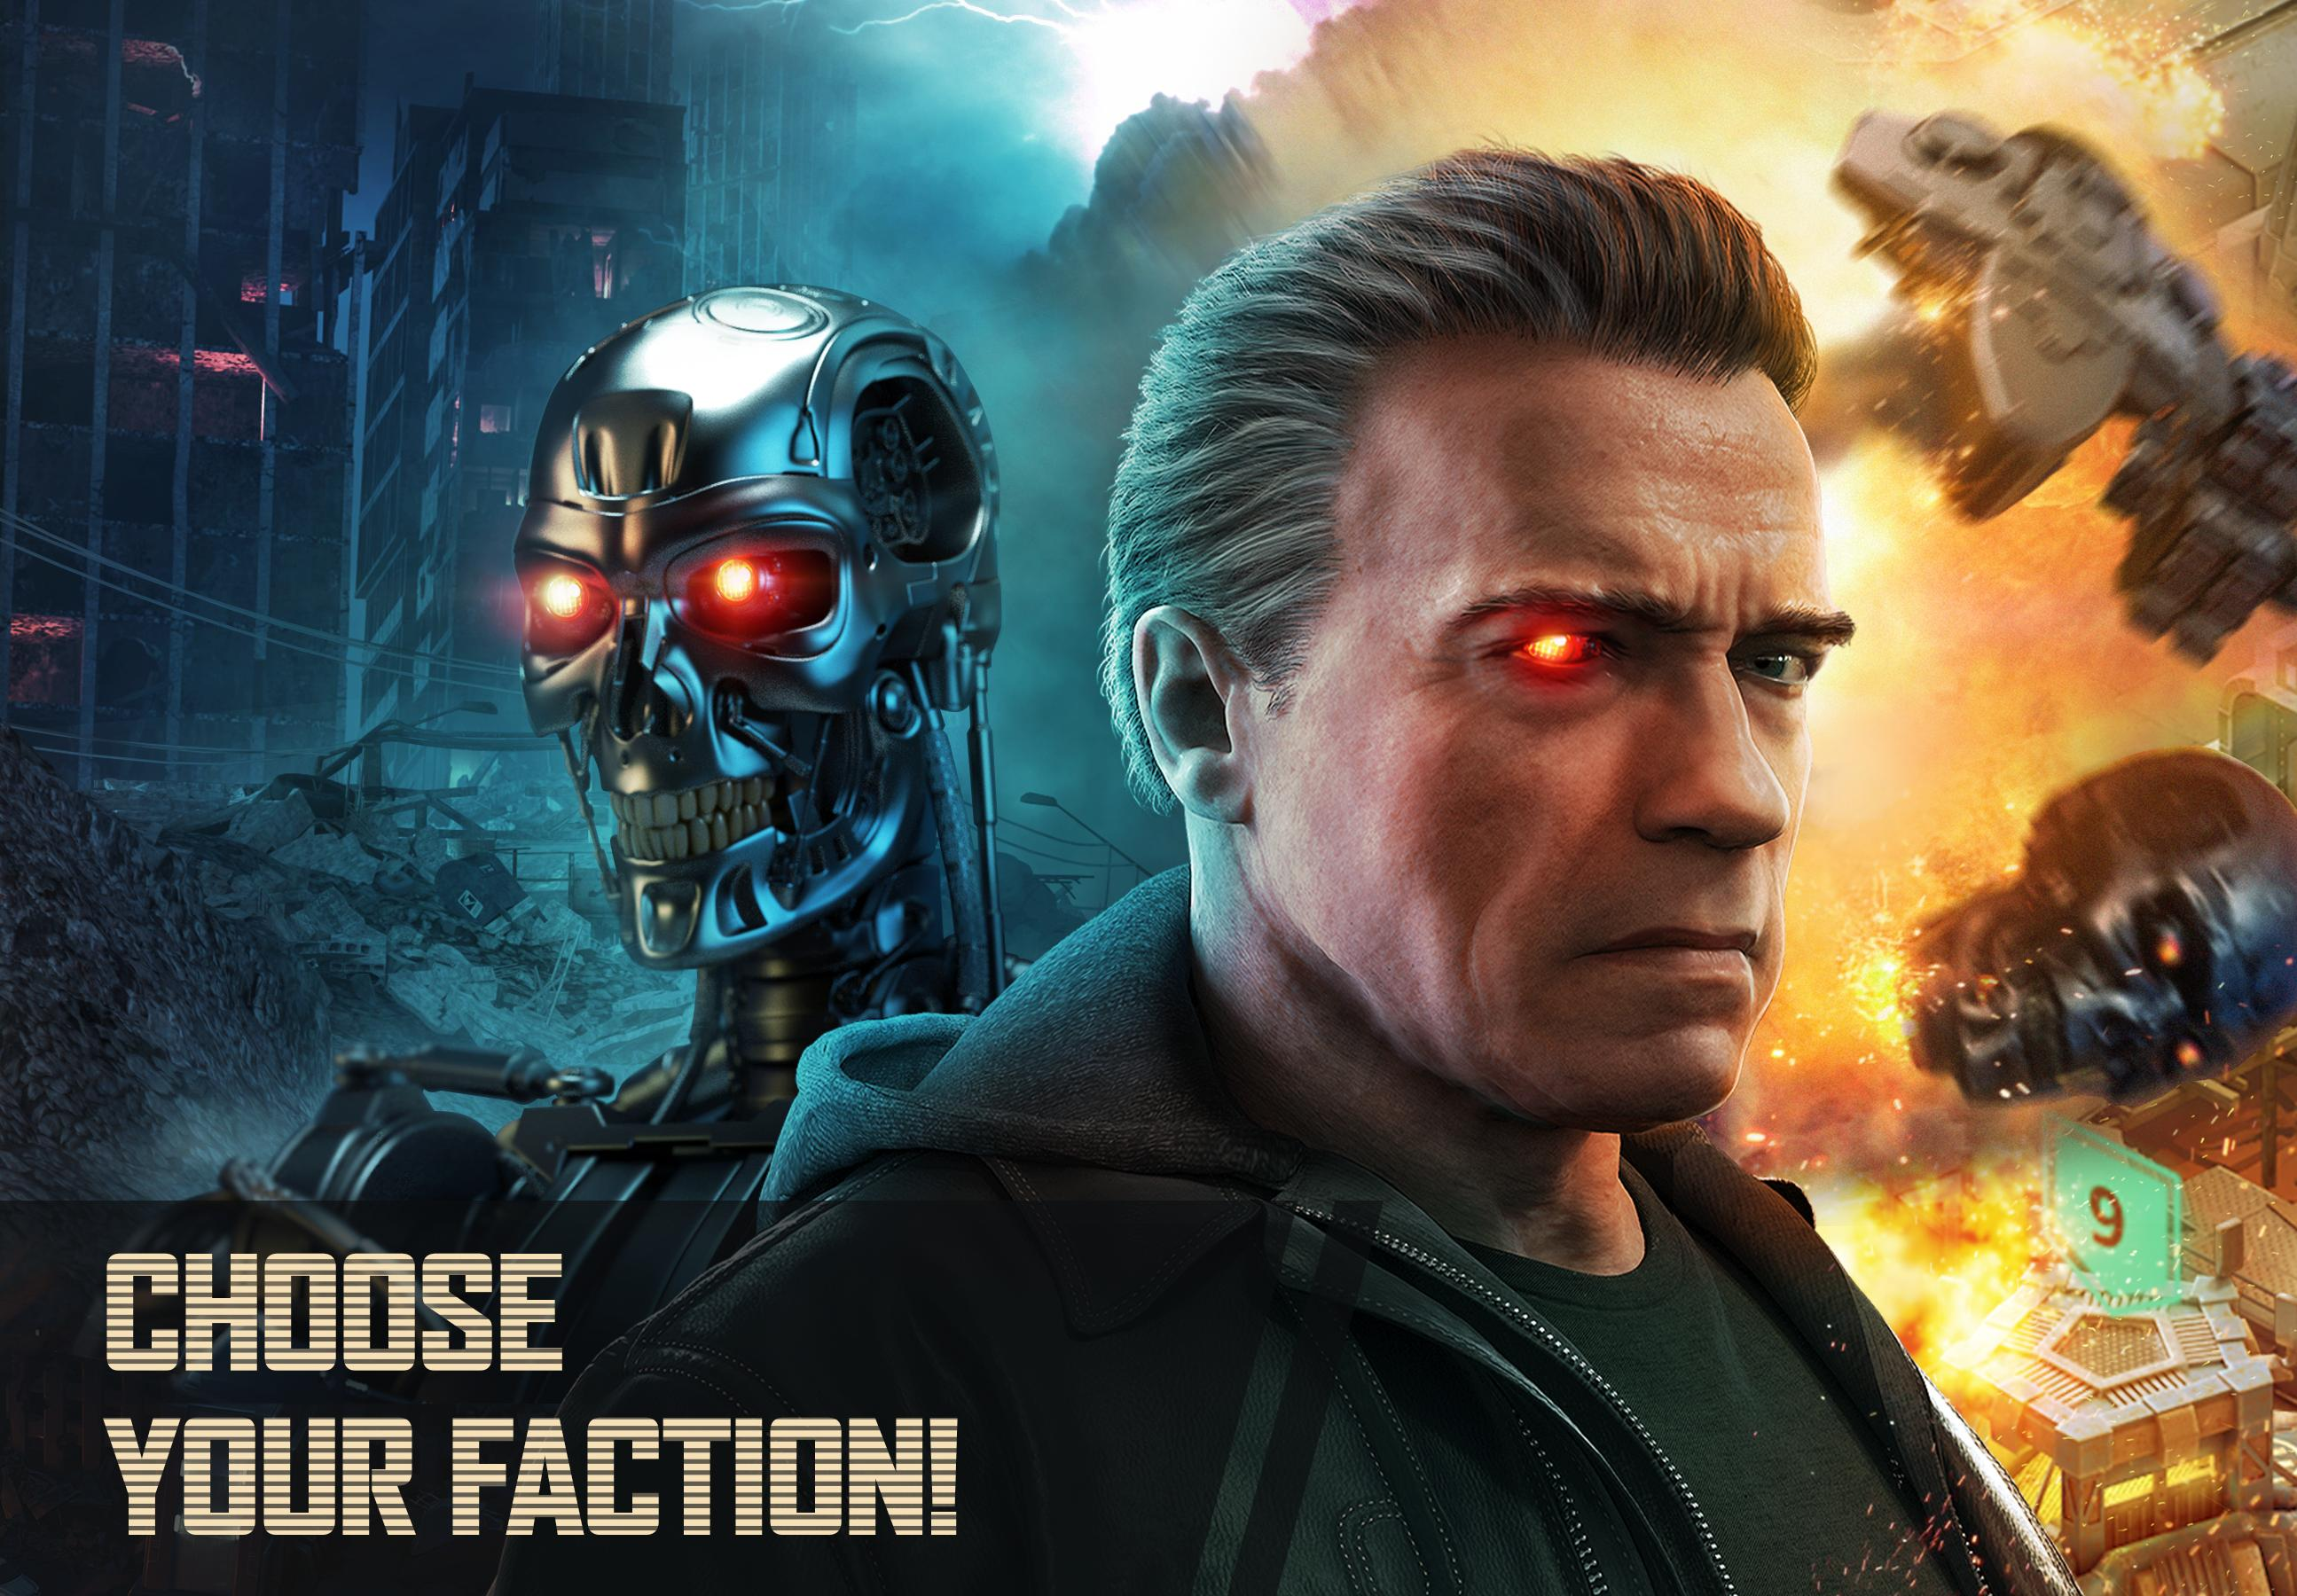 Terminator Genisys: Future War 1.9.3.274 Screenshot 7